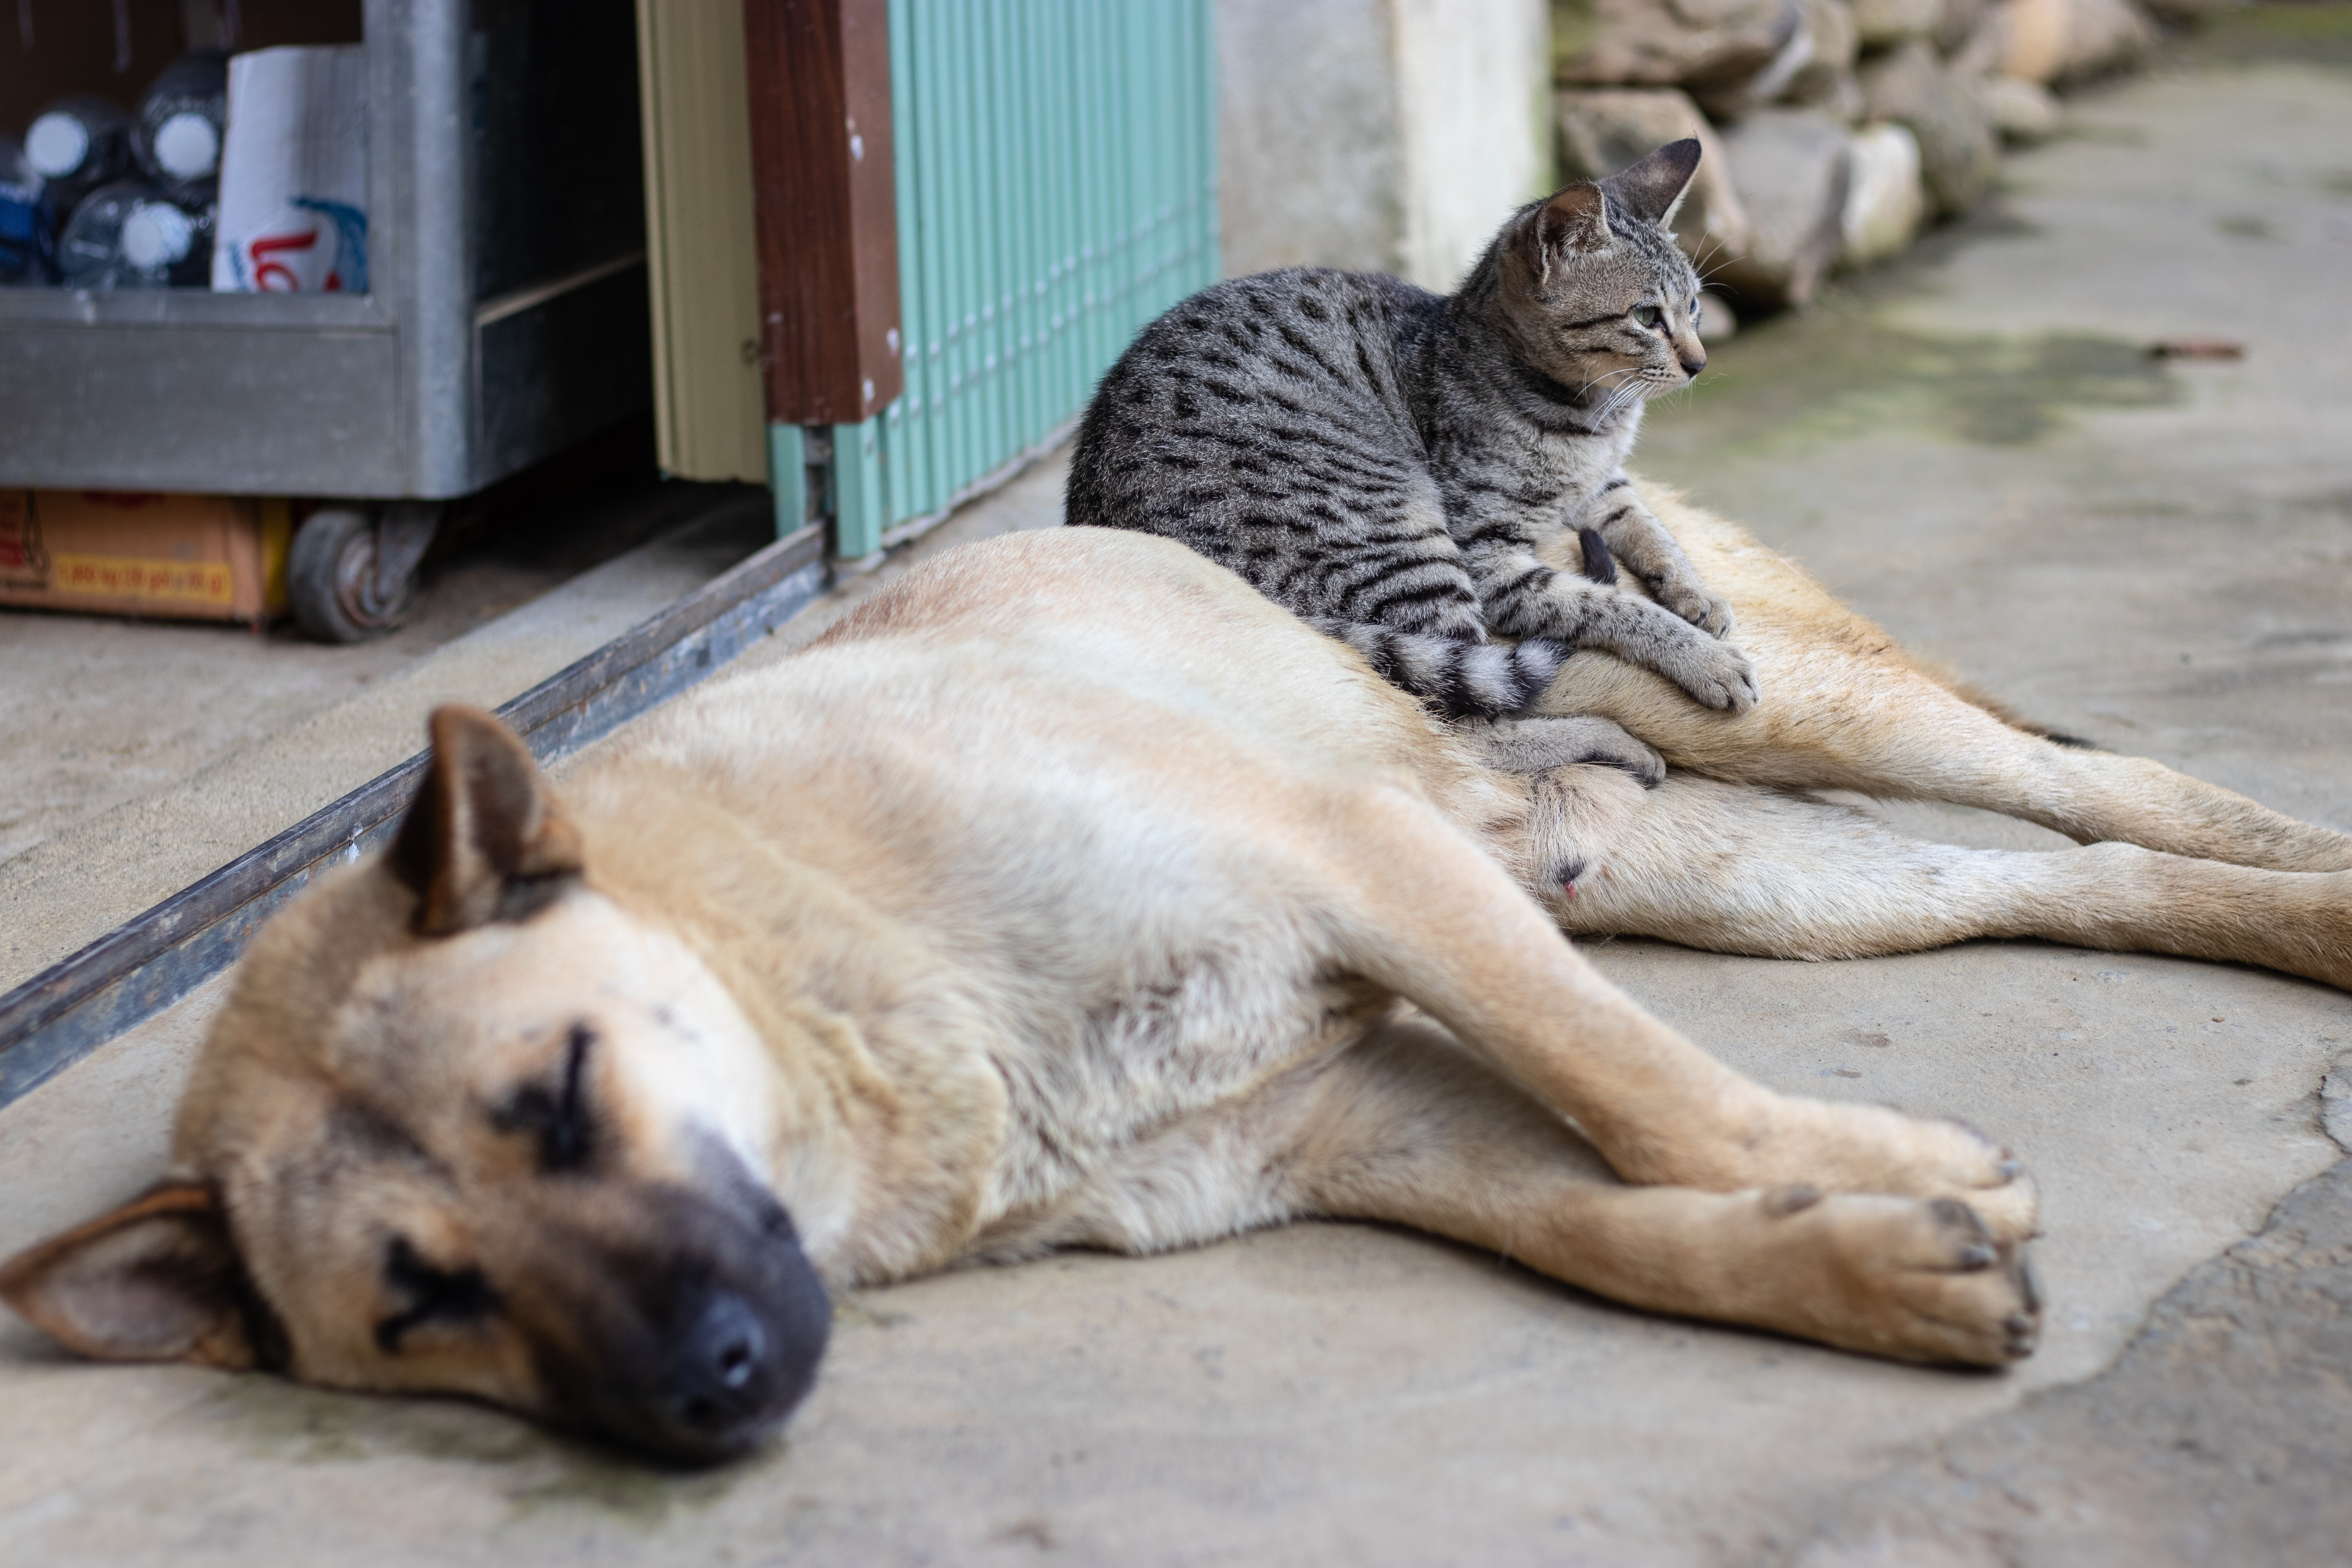 Why do people prefer dogs over cats? They re more controllable, study finds.